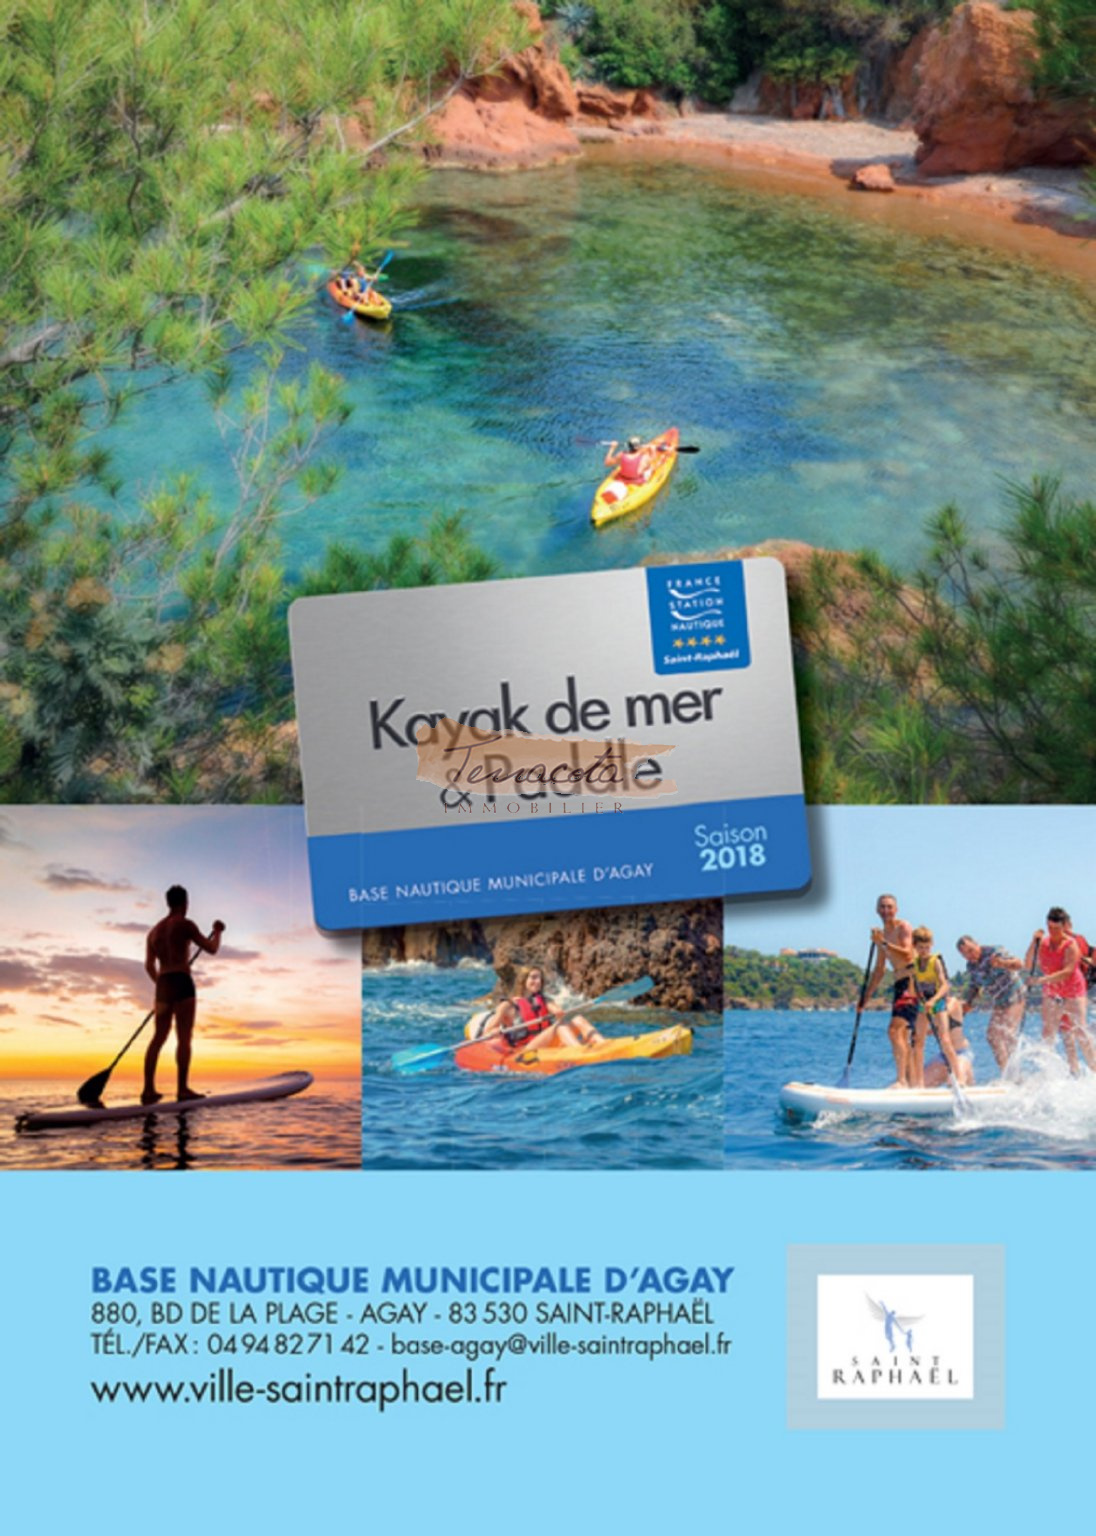 centre nautique d'agay, location paddle, kayak etc